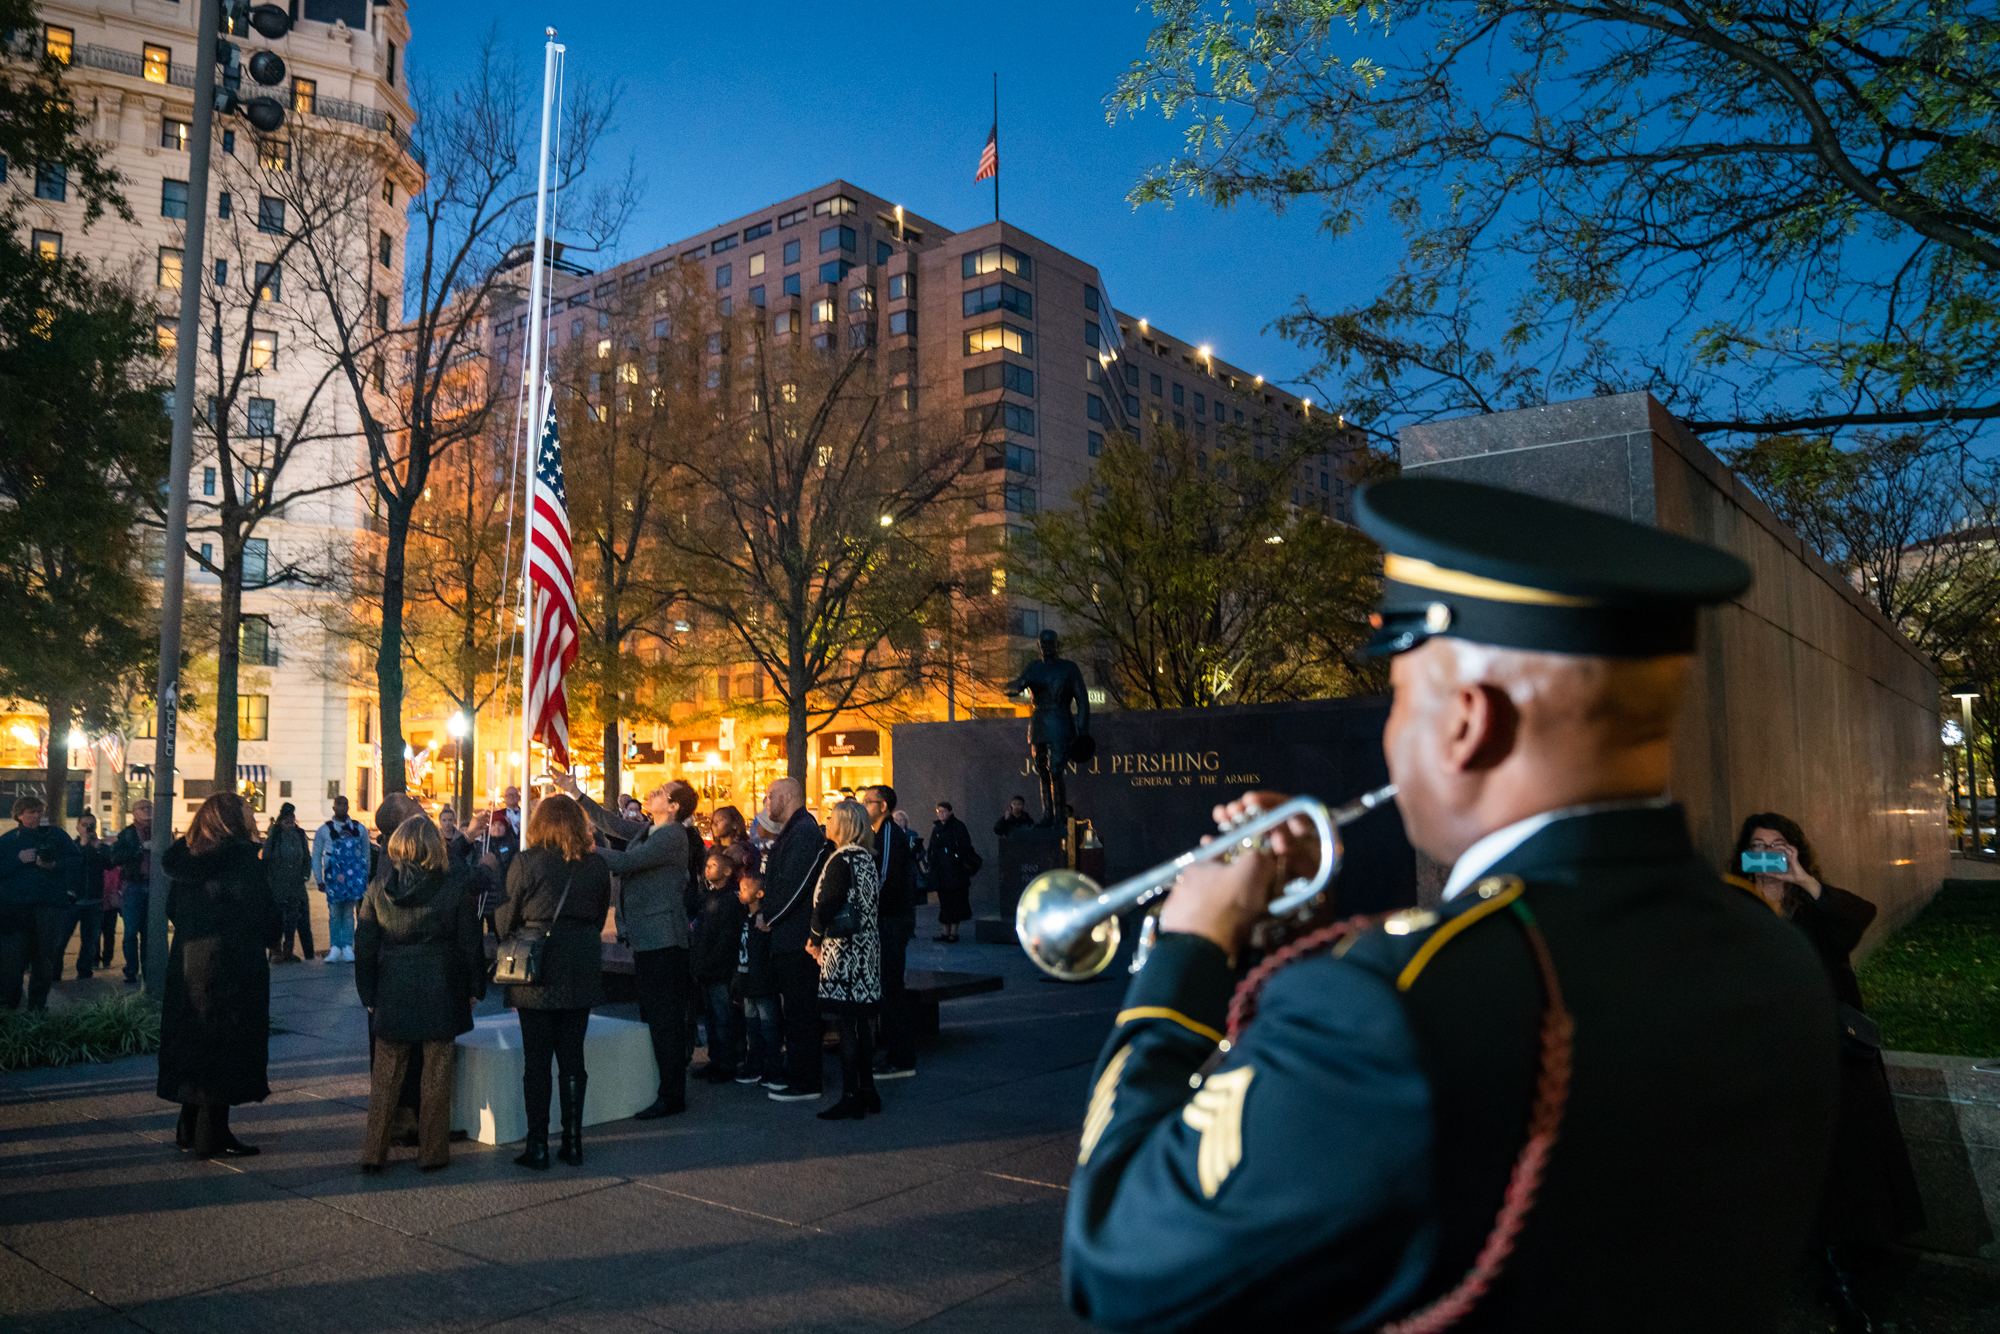 To conclude the evening, guests lowers the American flag as the 369th Experience Band director, Dr. Isrea Butler, performs Taps.